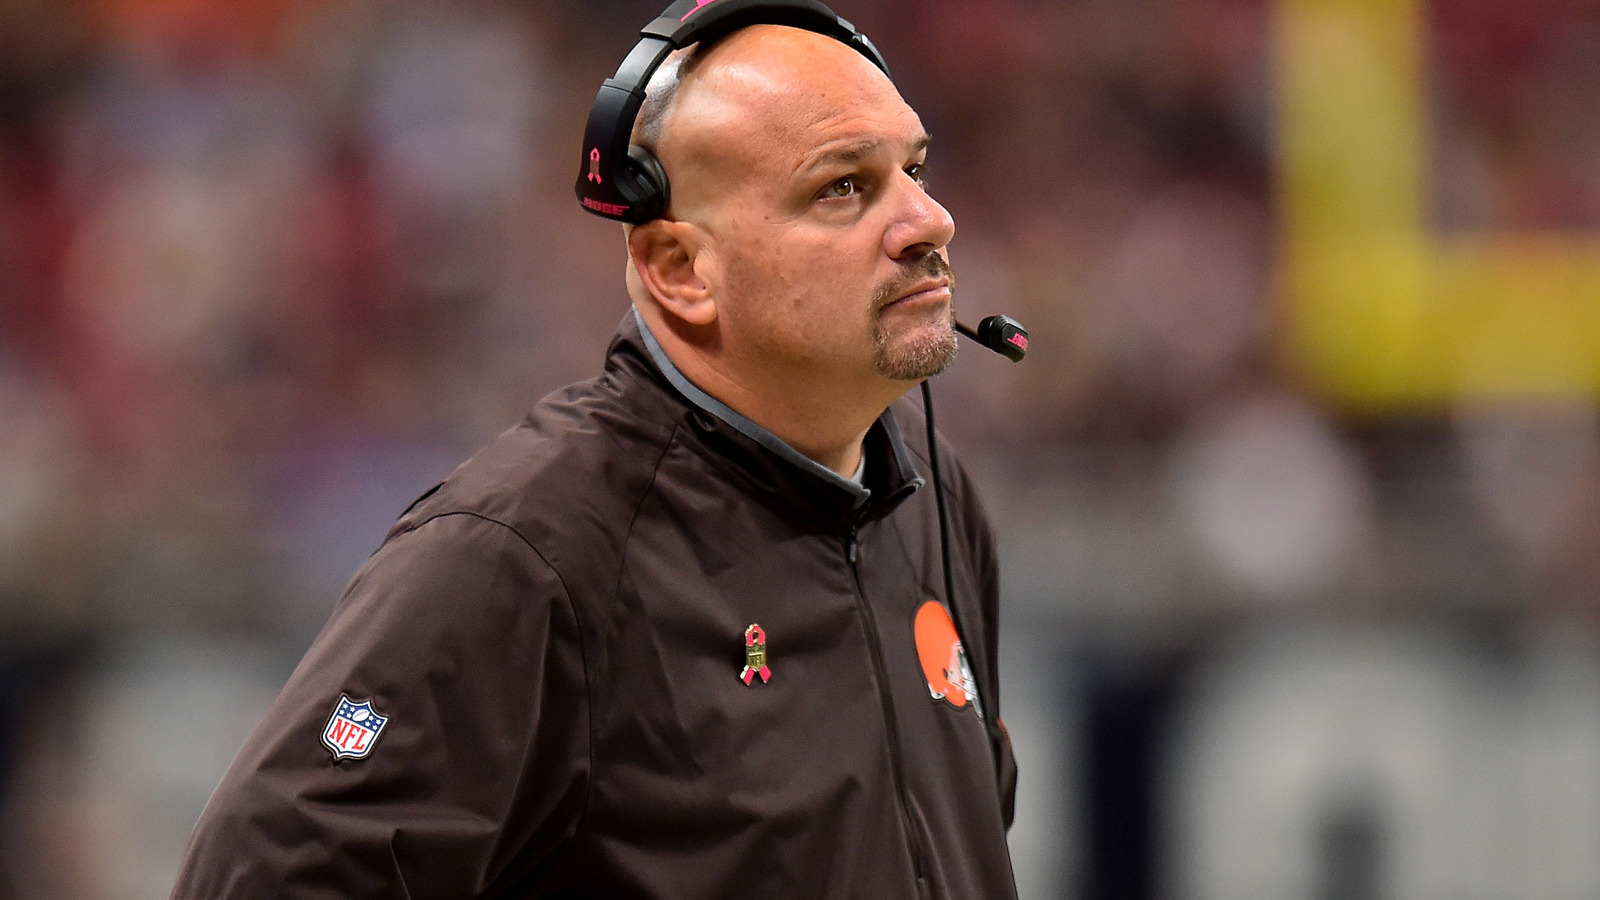 Mike Pettine occasionally slept in a closet while with the Jets